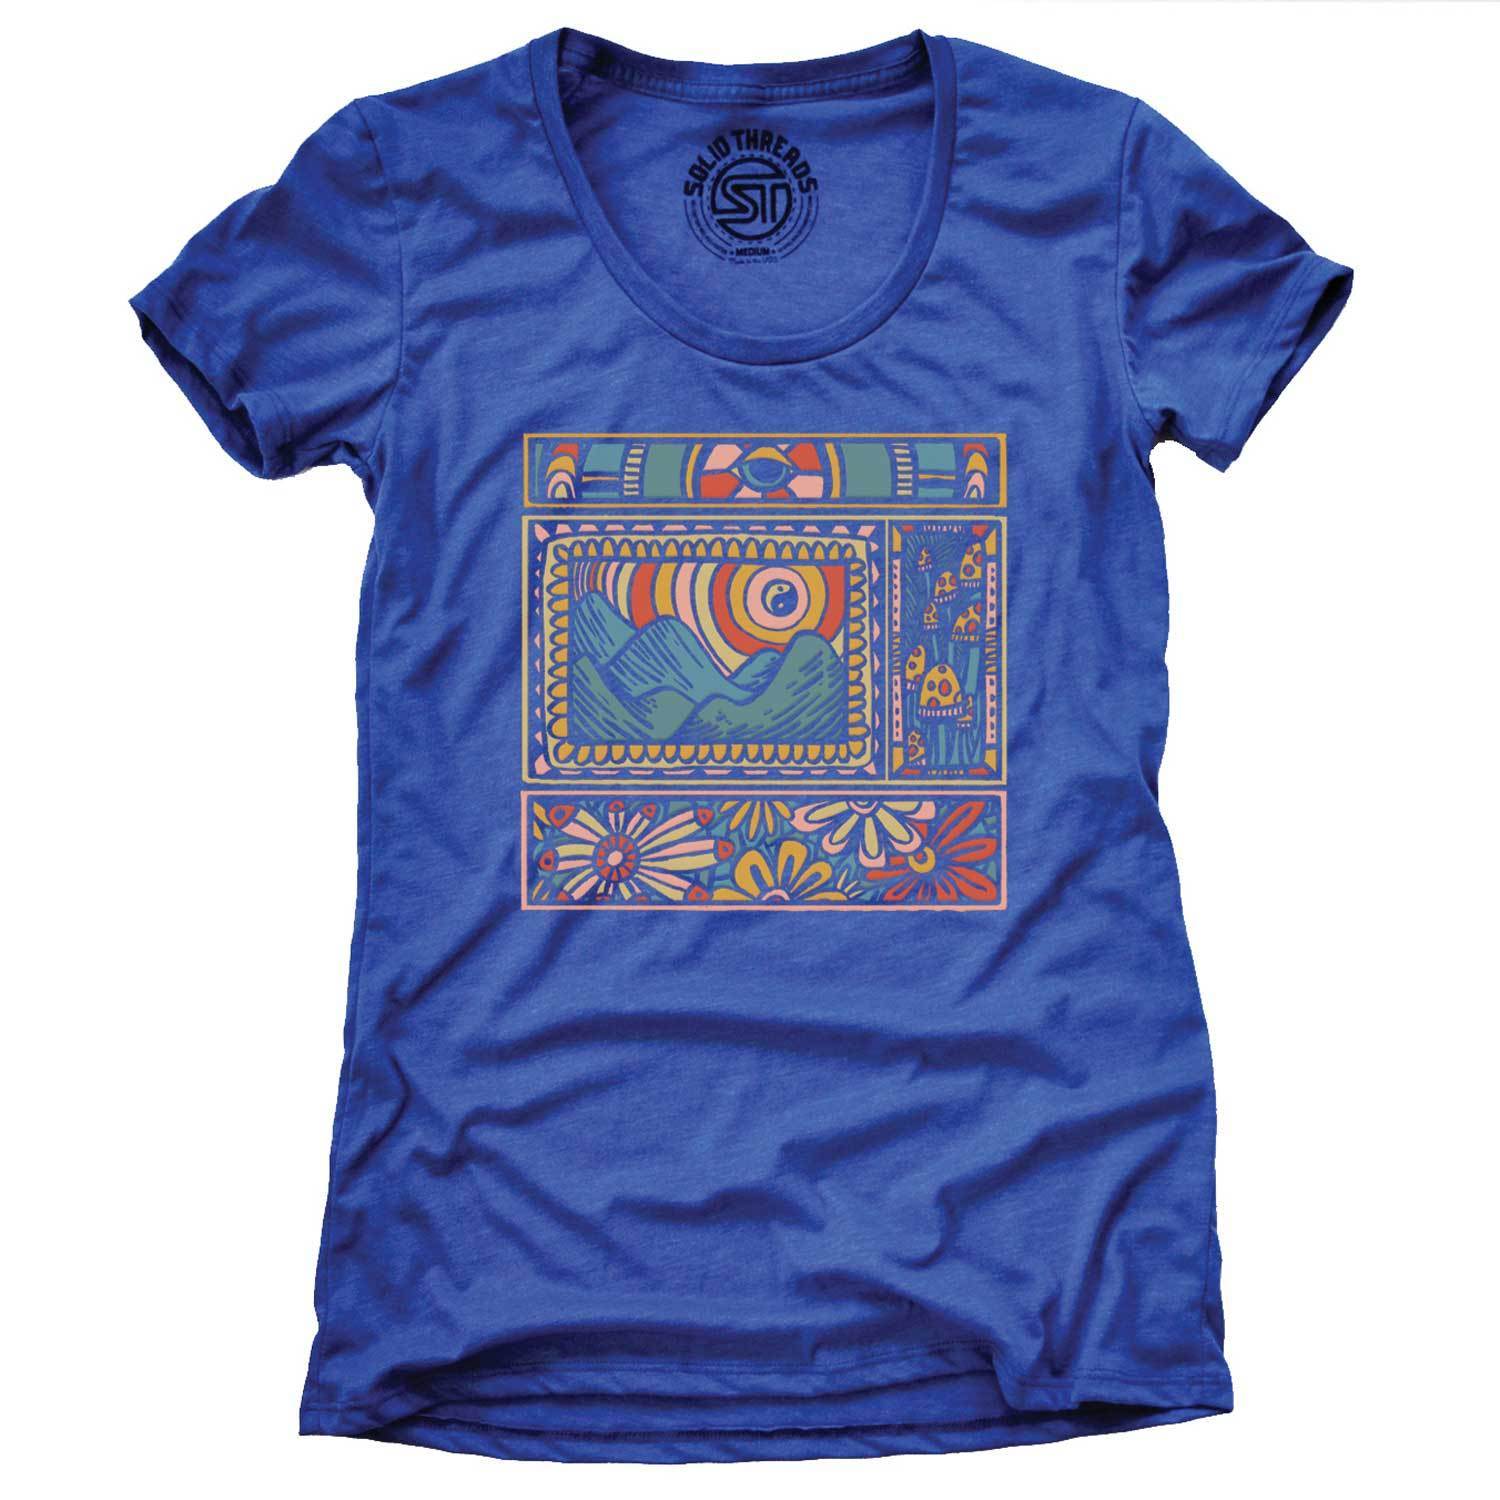 Women's Trippy Nature Vintage Inspired Scoopneck T-Shirt | Cool Psychedelic Graphic Tee | Solid Threads